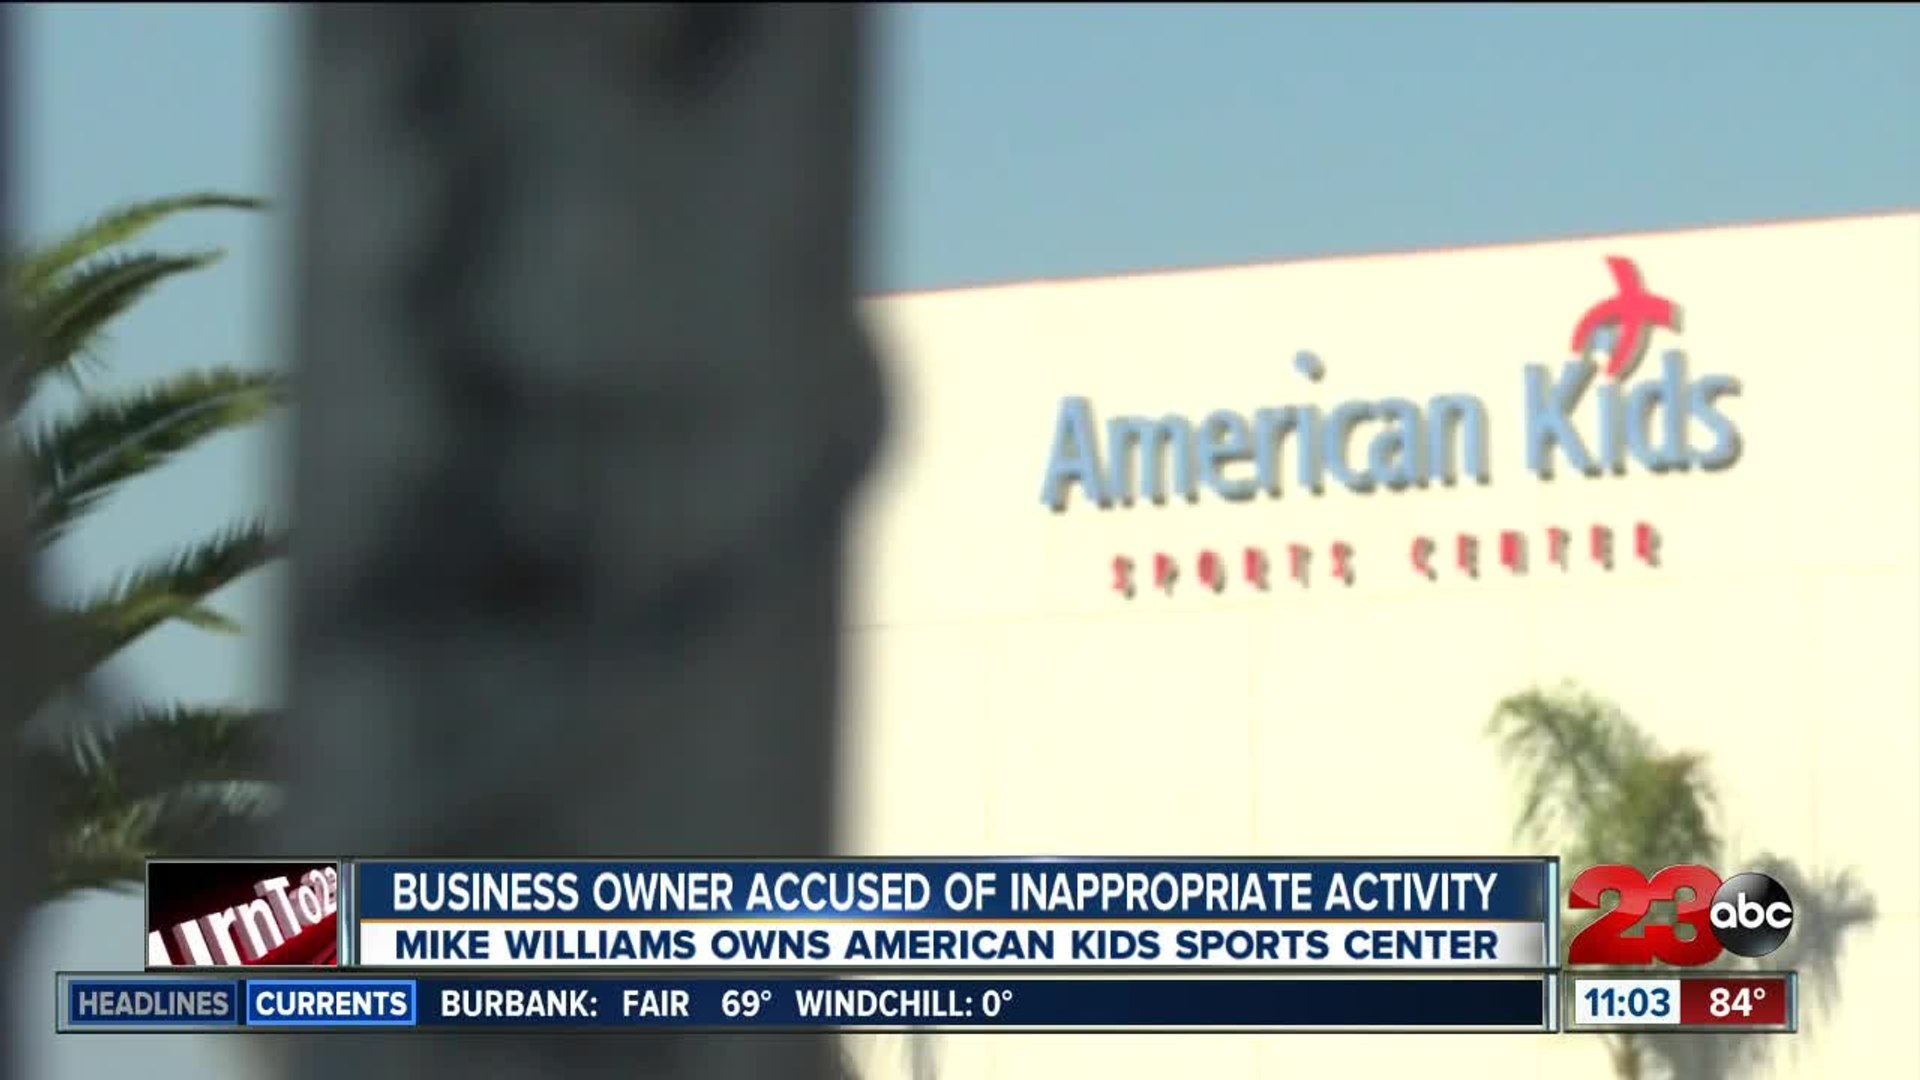 American Kids Sports Center's owner accused of